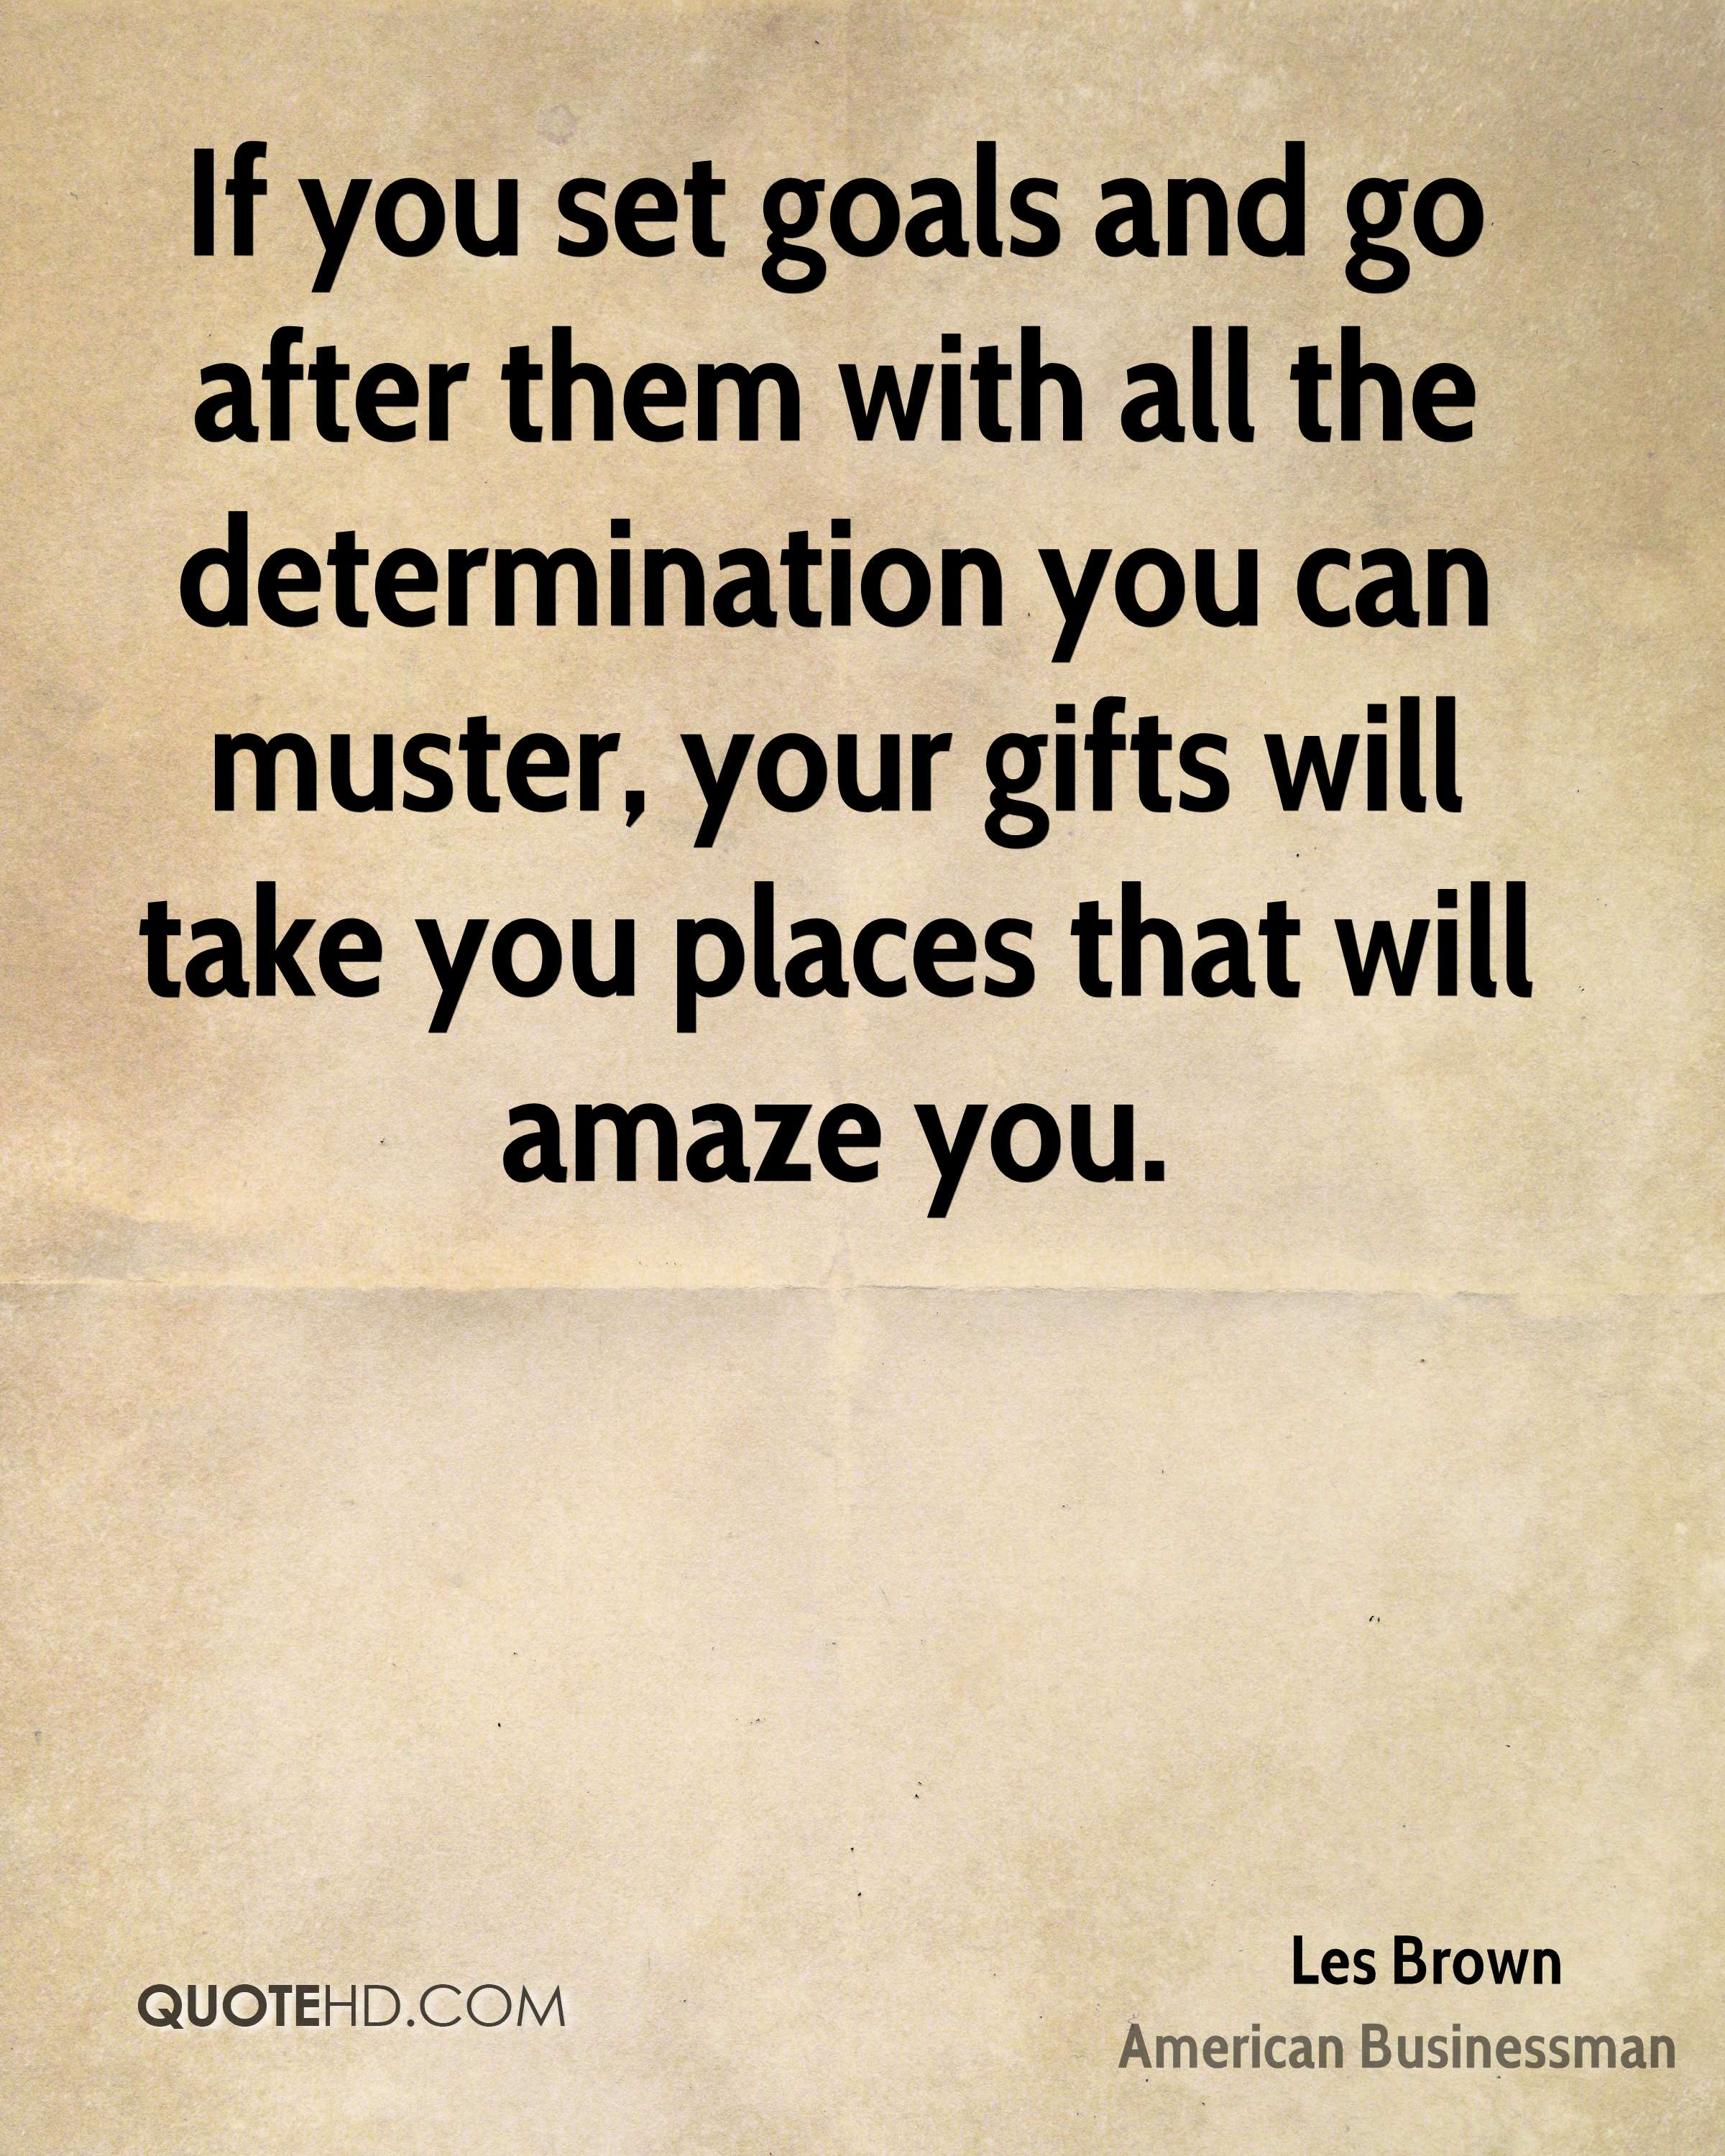 If you set goals and go after them with all the determination you can muster, your gifts will take you places that will amaze you.